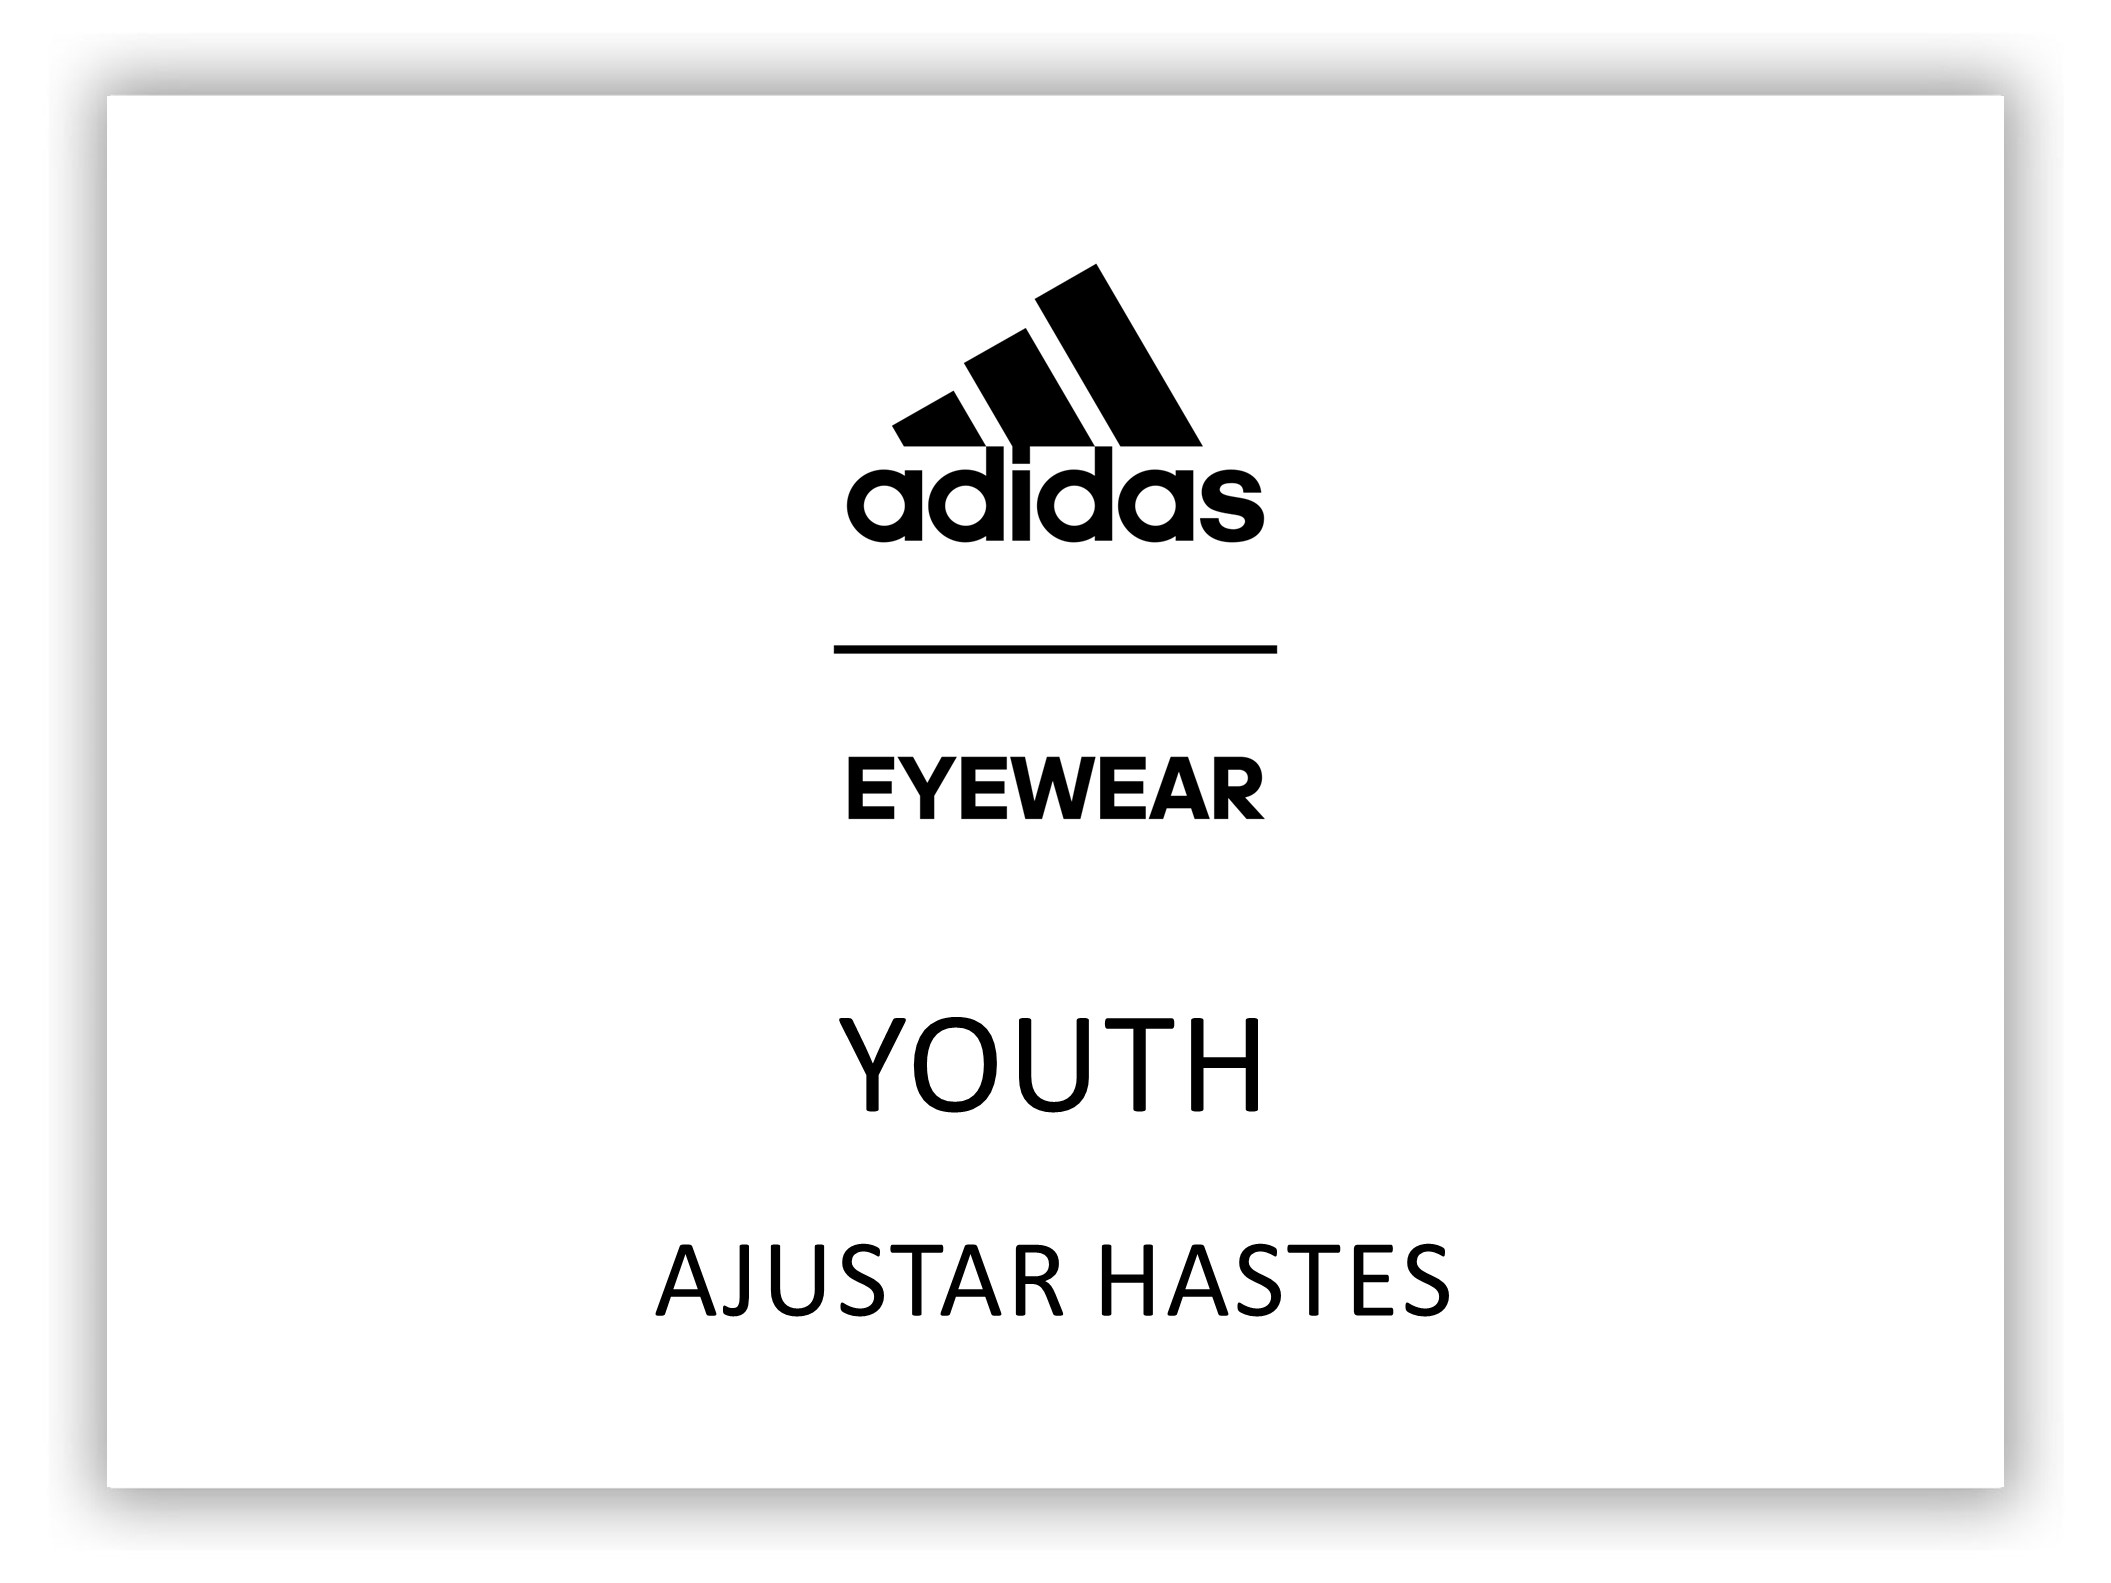 Adidas_YOUTH-HASTES